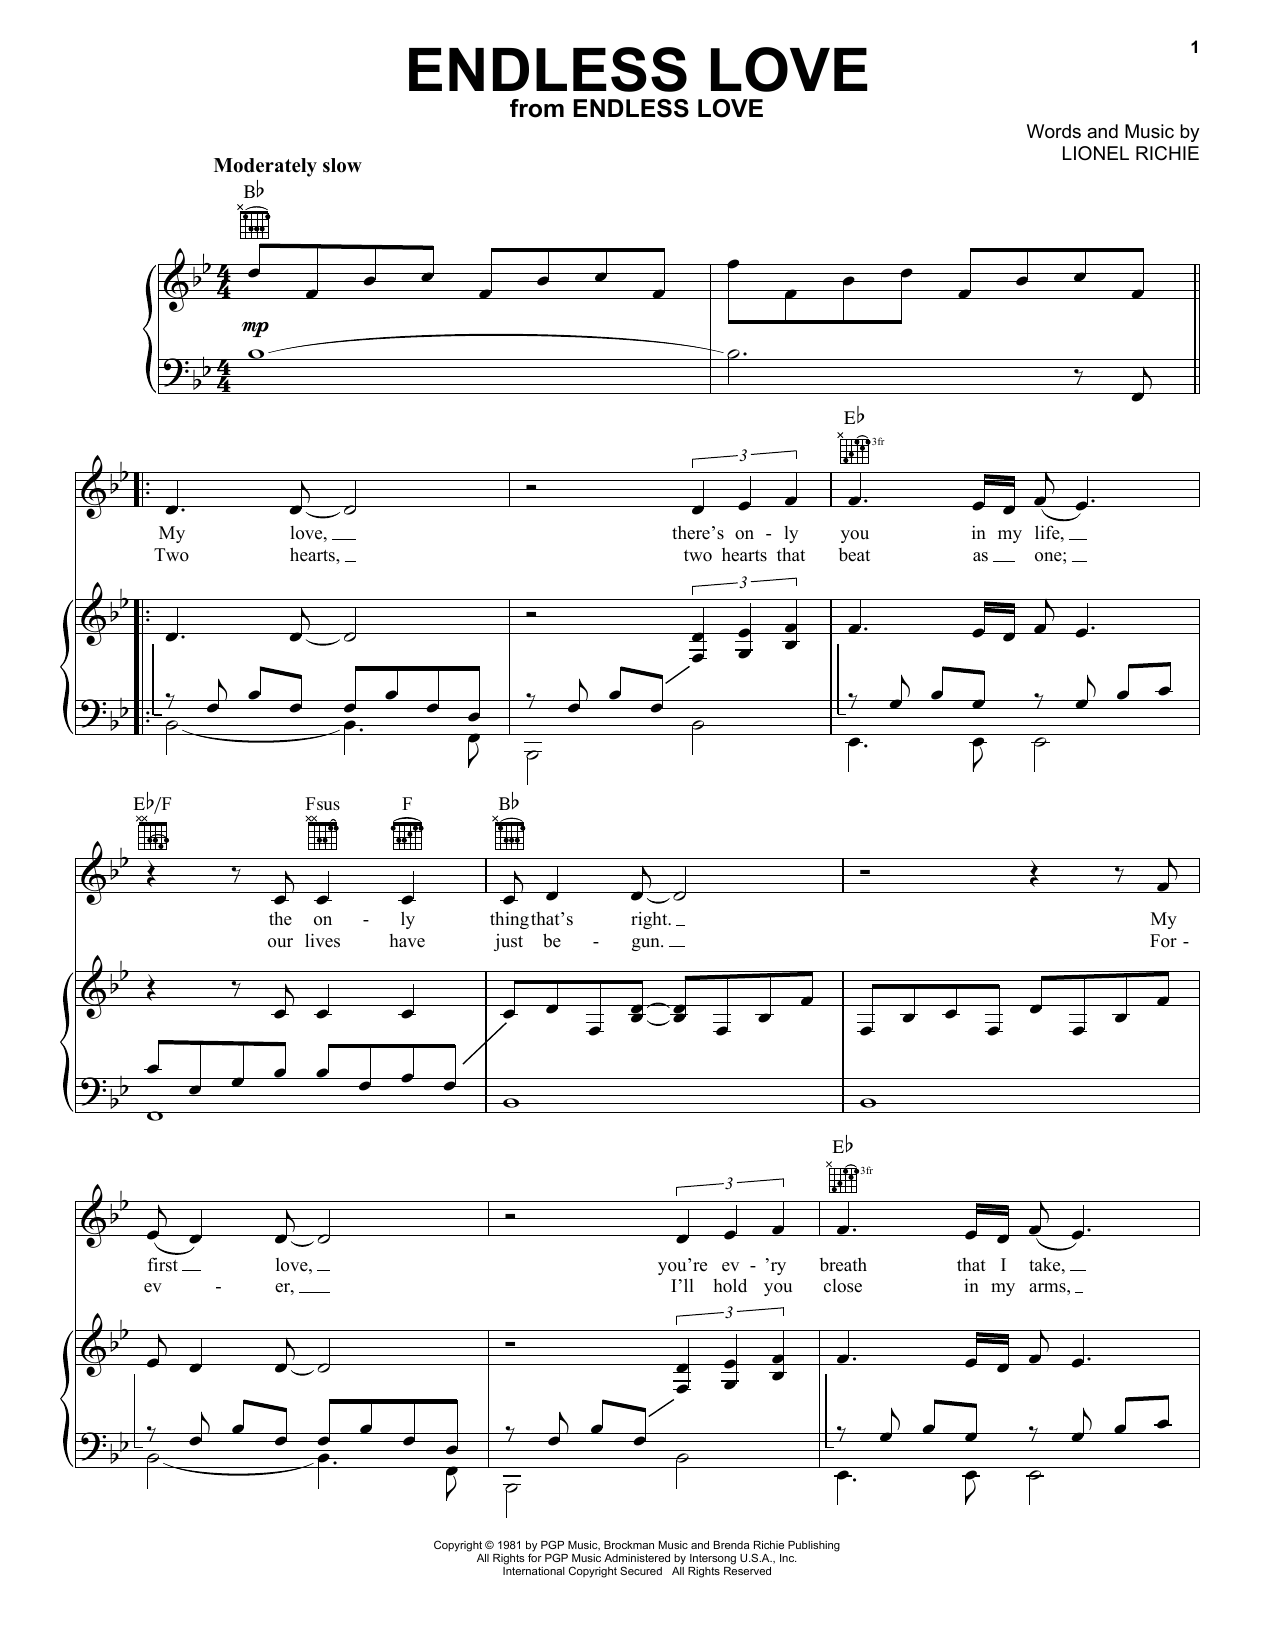 Lionel Richie & Diana Ross Endless Love sheet music notes and chords